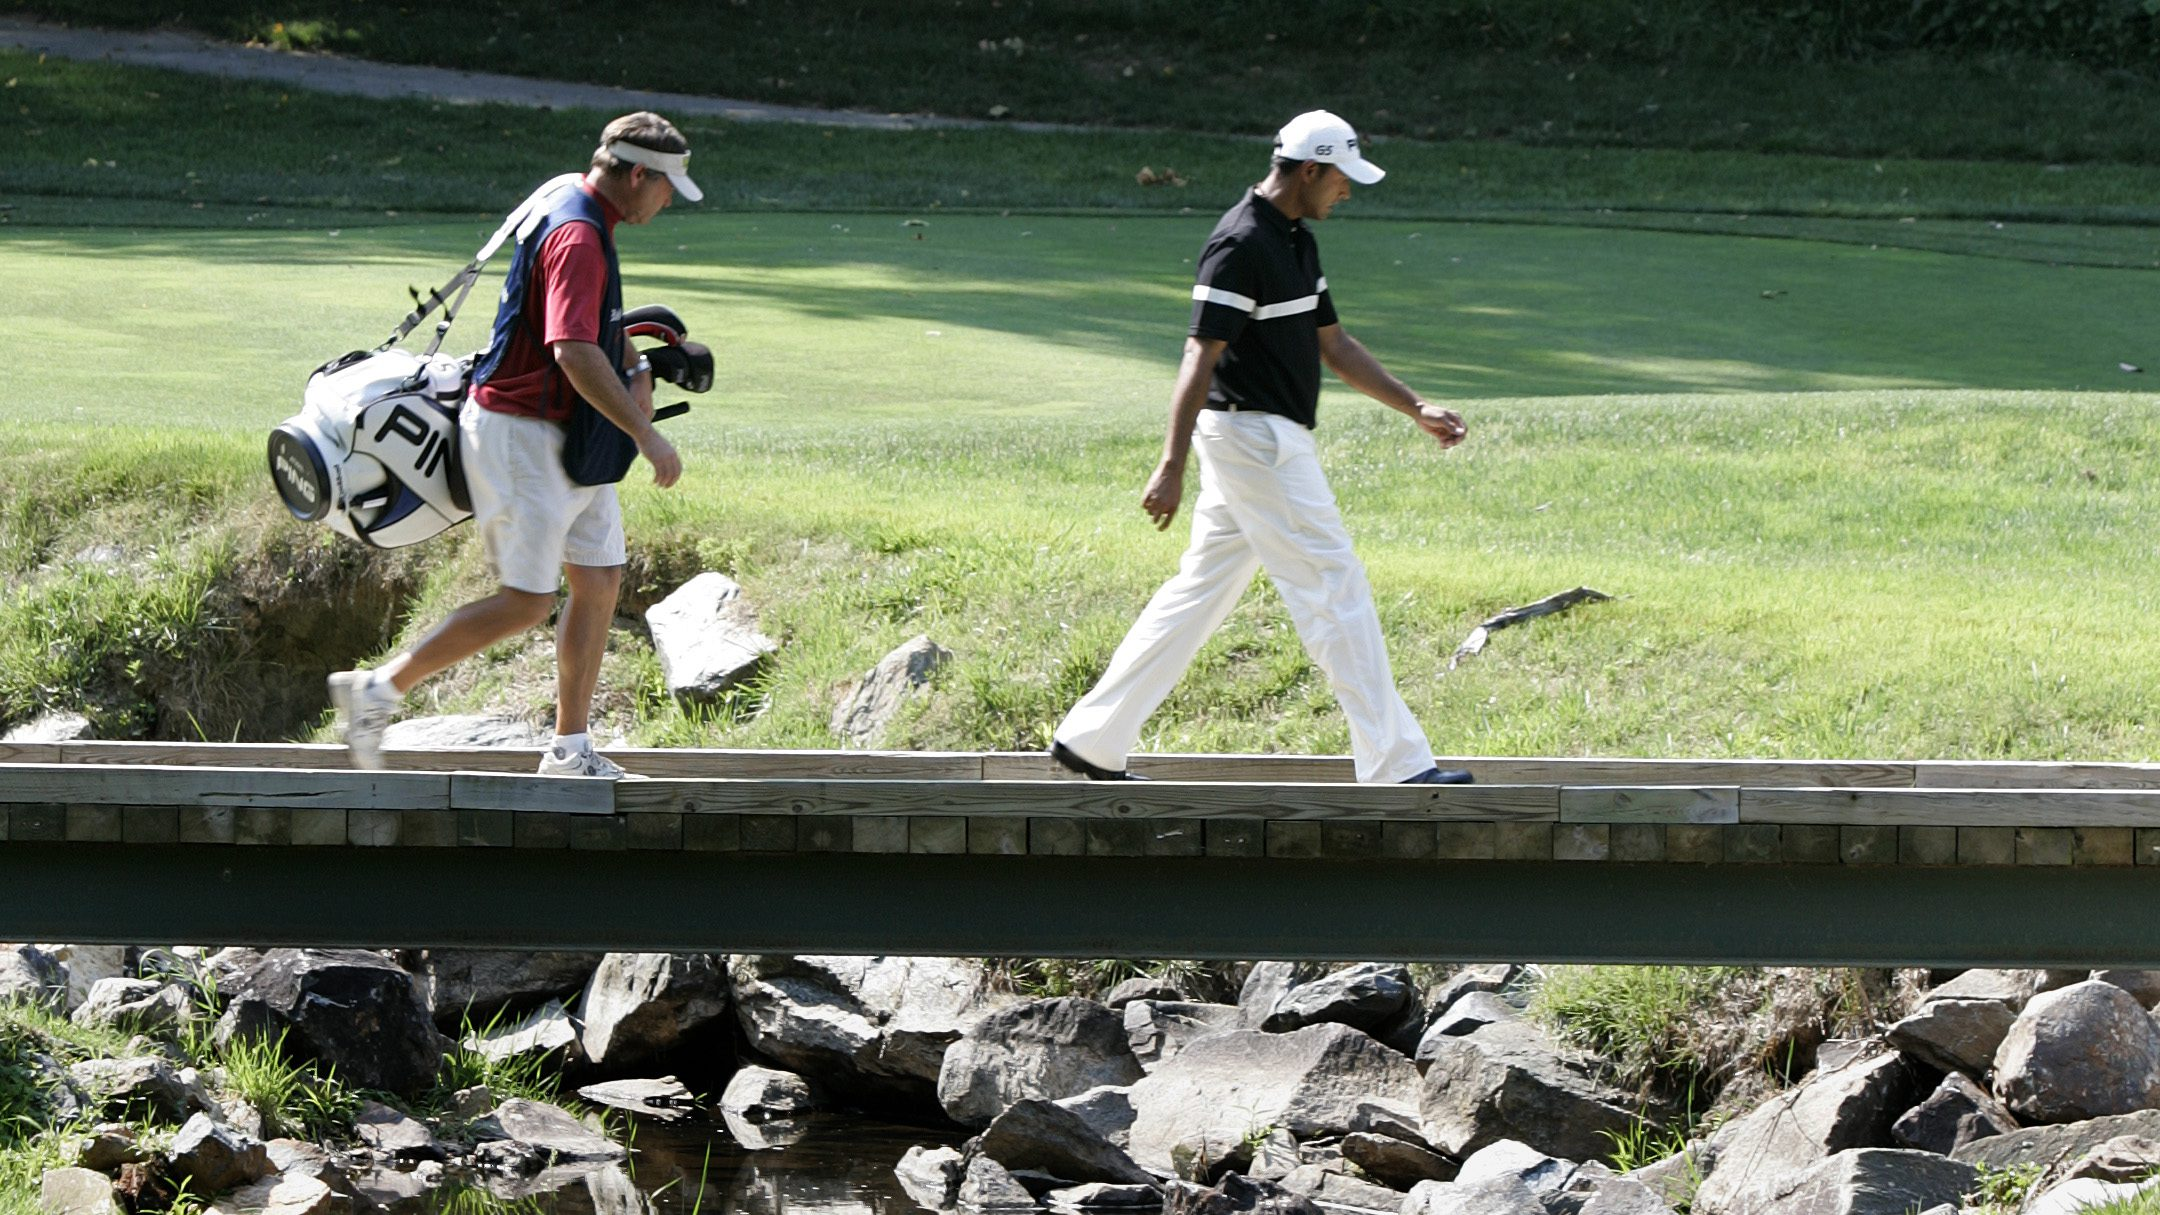 Golfer Arjun Atwal, right, of Calcutta, India, walks with his caddie as they cross a river that runs through the 12th fairway during the first round of the Booz Allen Classic at TPC Avenel in Potomac, Md., Thursday, June 22, 2006. (AP Photo/Chris Gardner)